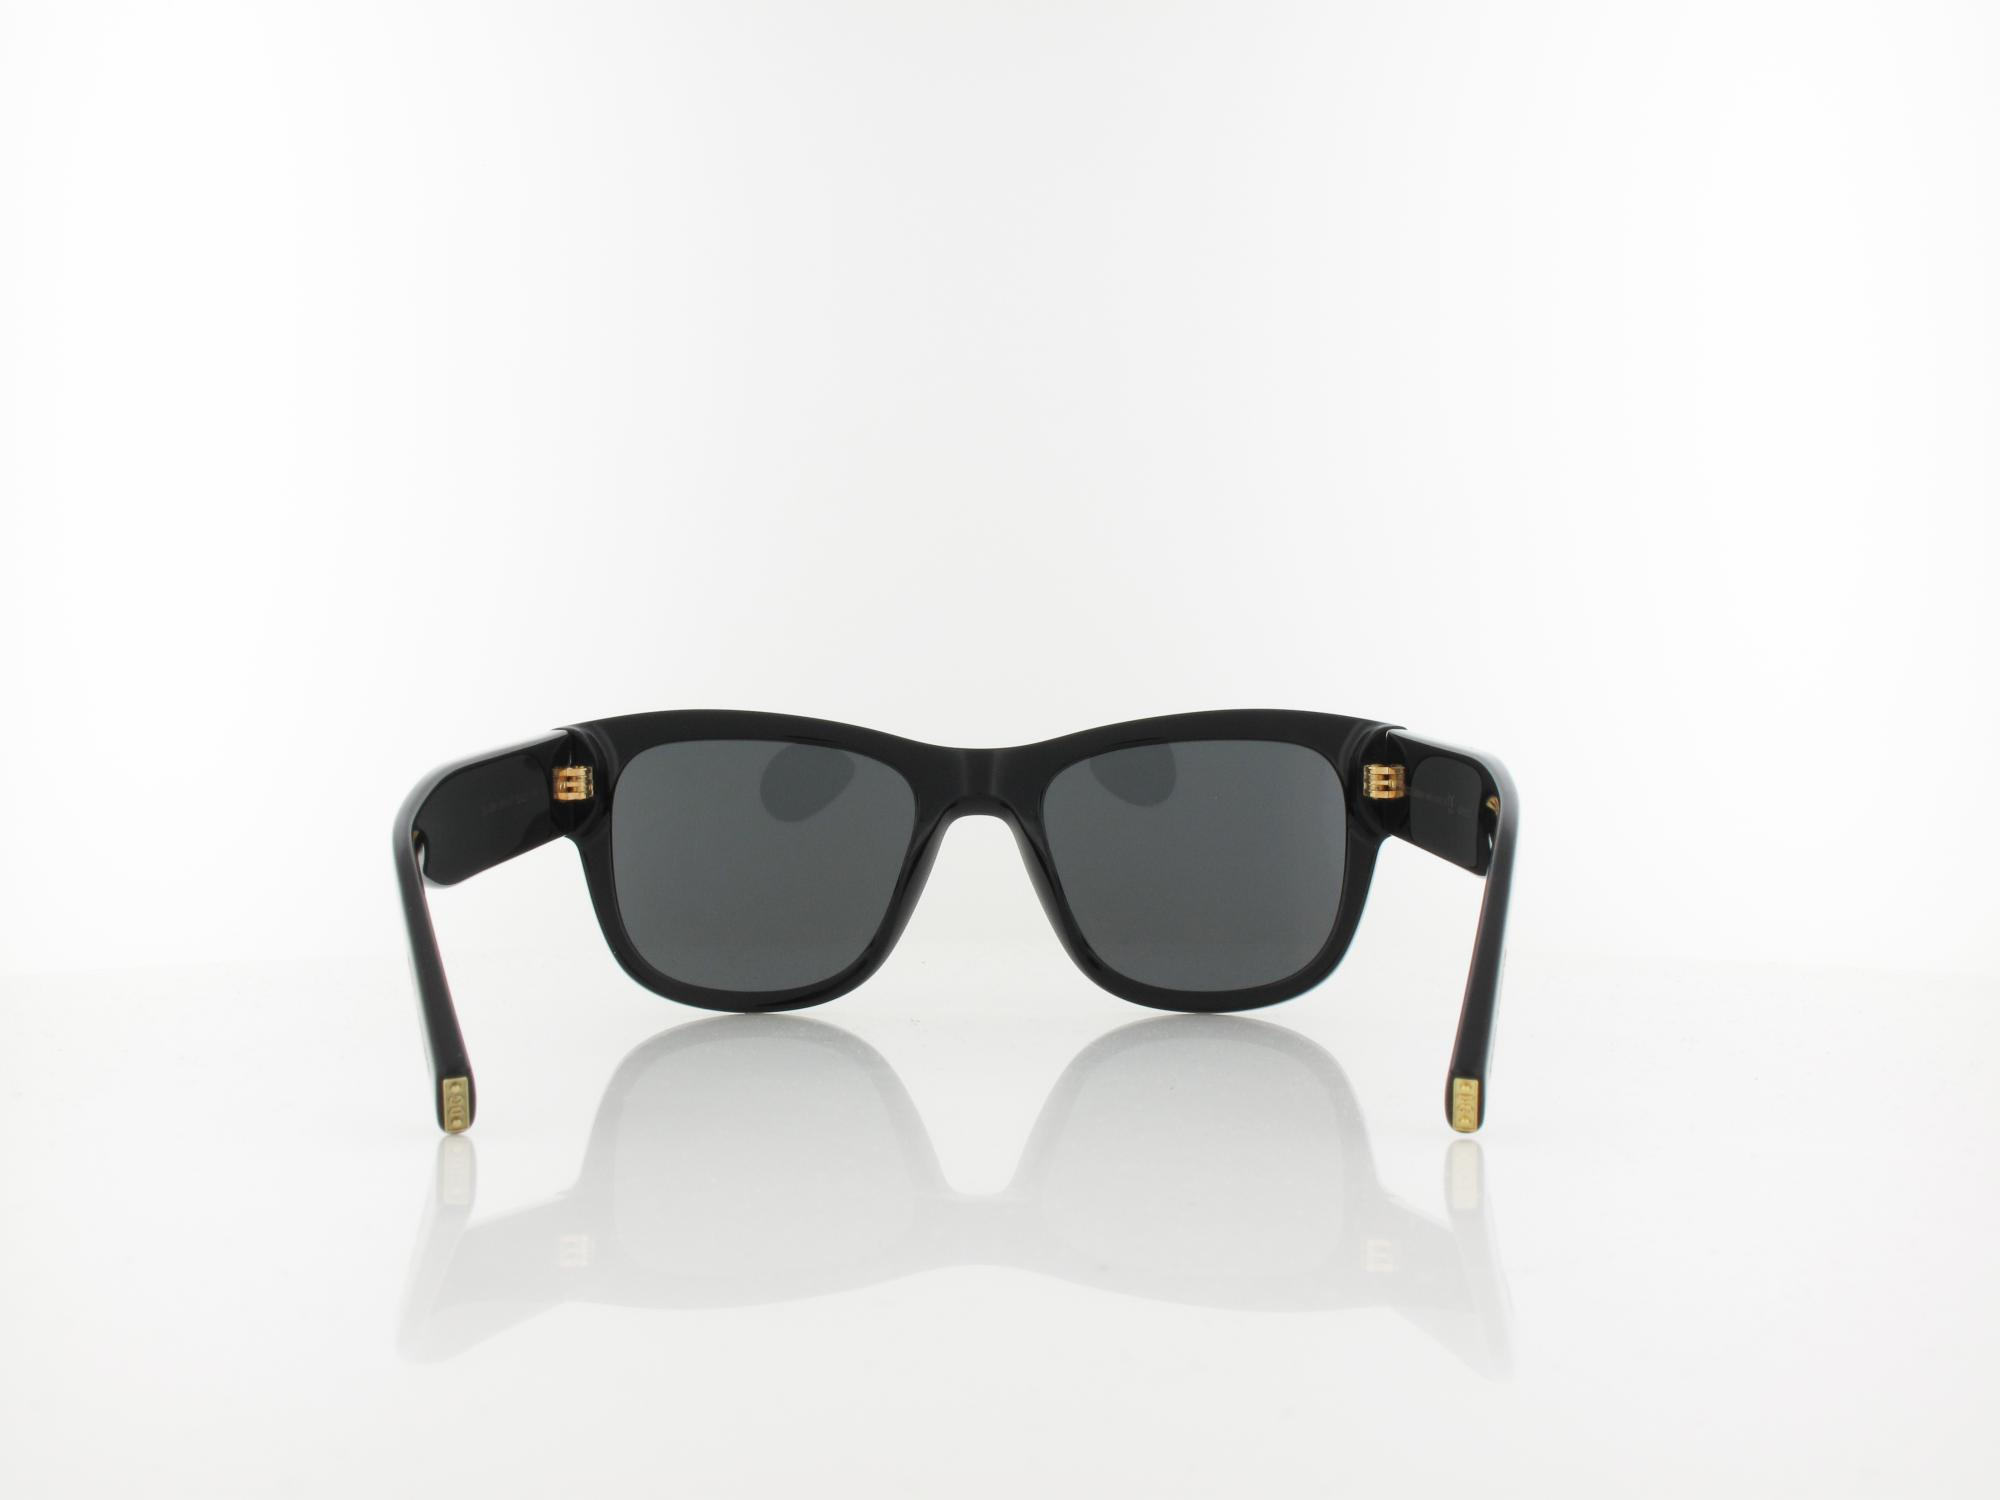 Dolce&Gabbana | DG4338 501/87 52 | black / grey